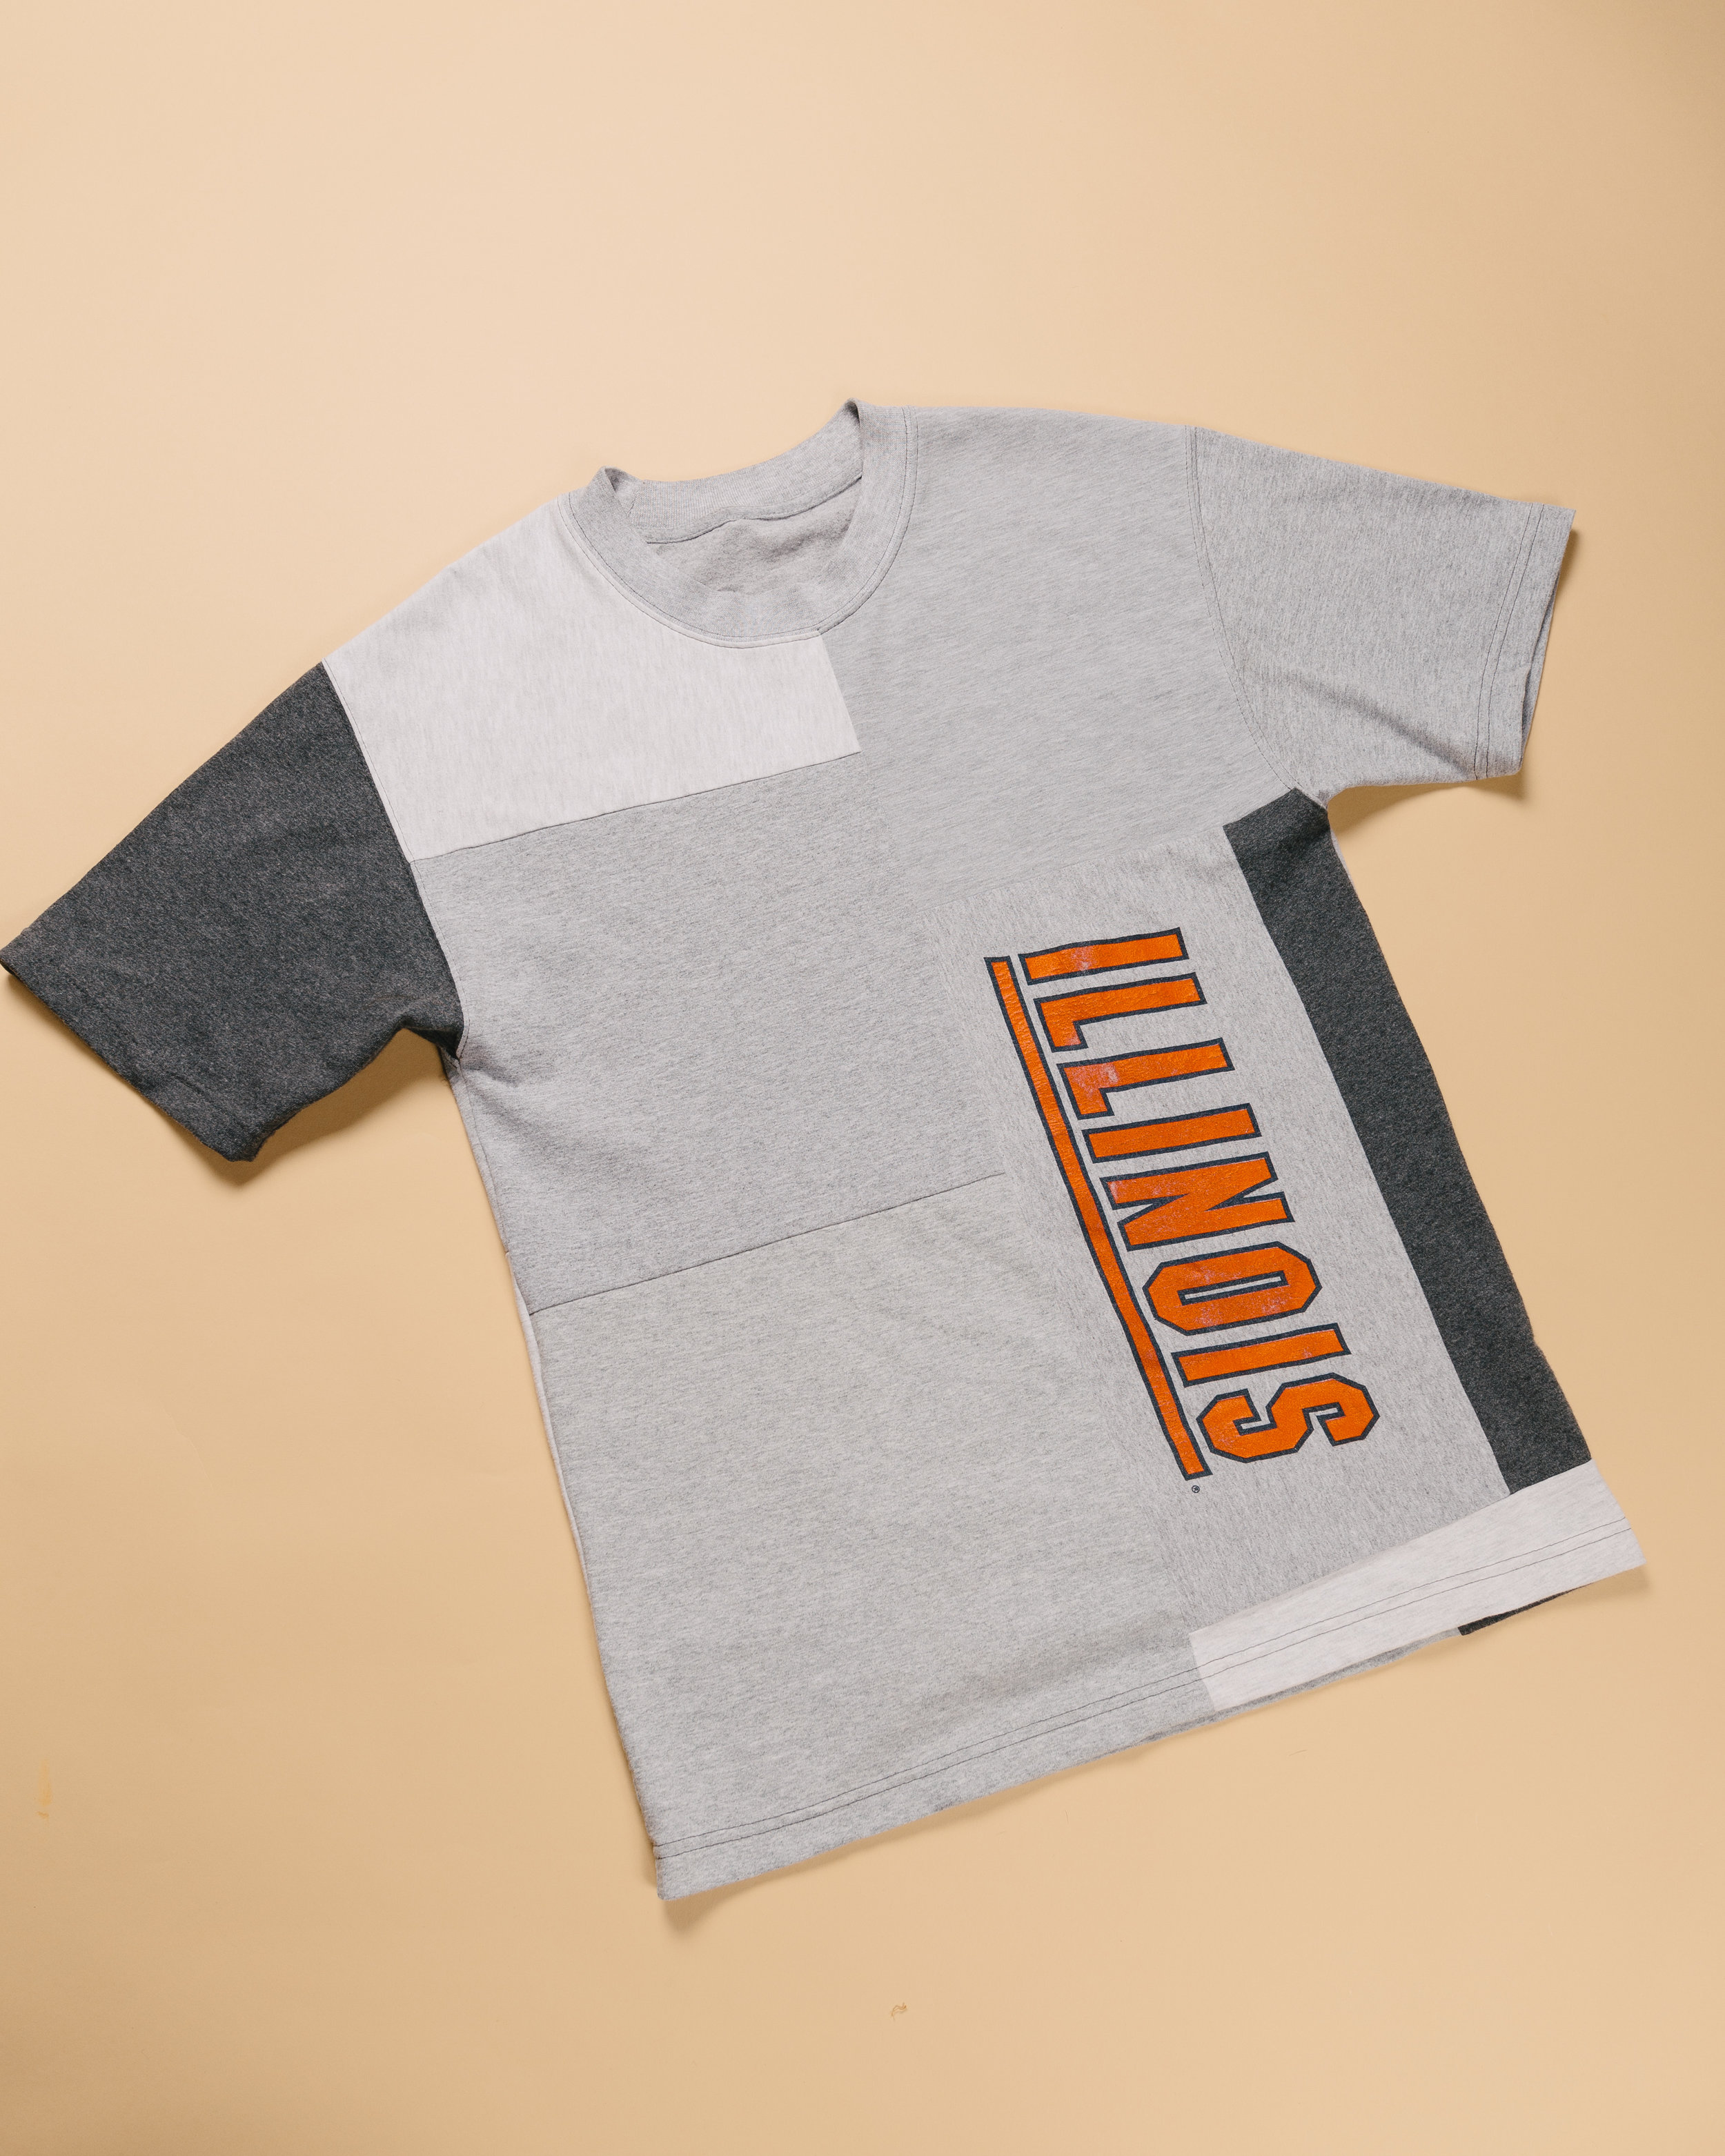 Greyscale Tee - Made reworked several tees and creating something new, the main graphic being a vintage University of Illinois tee.